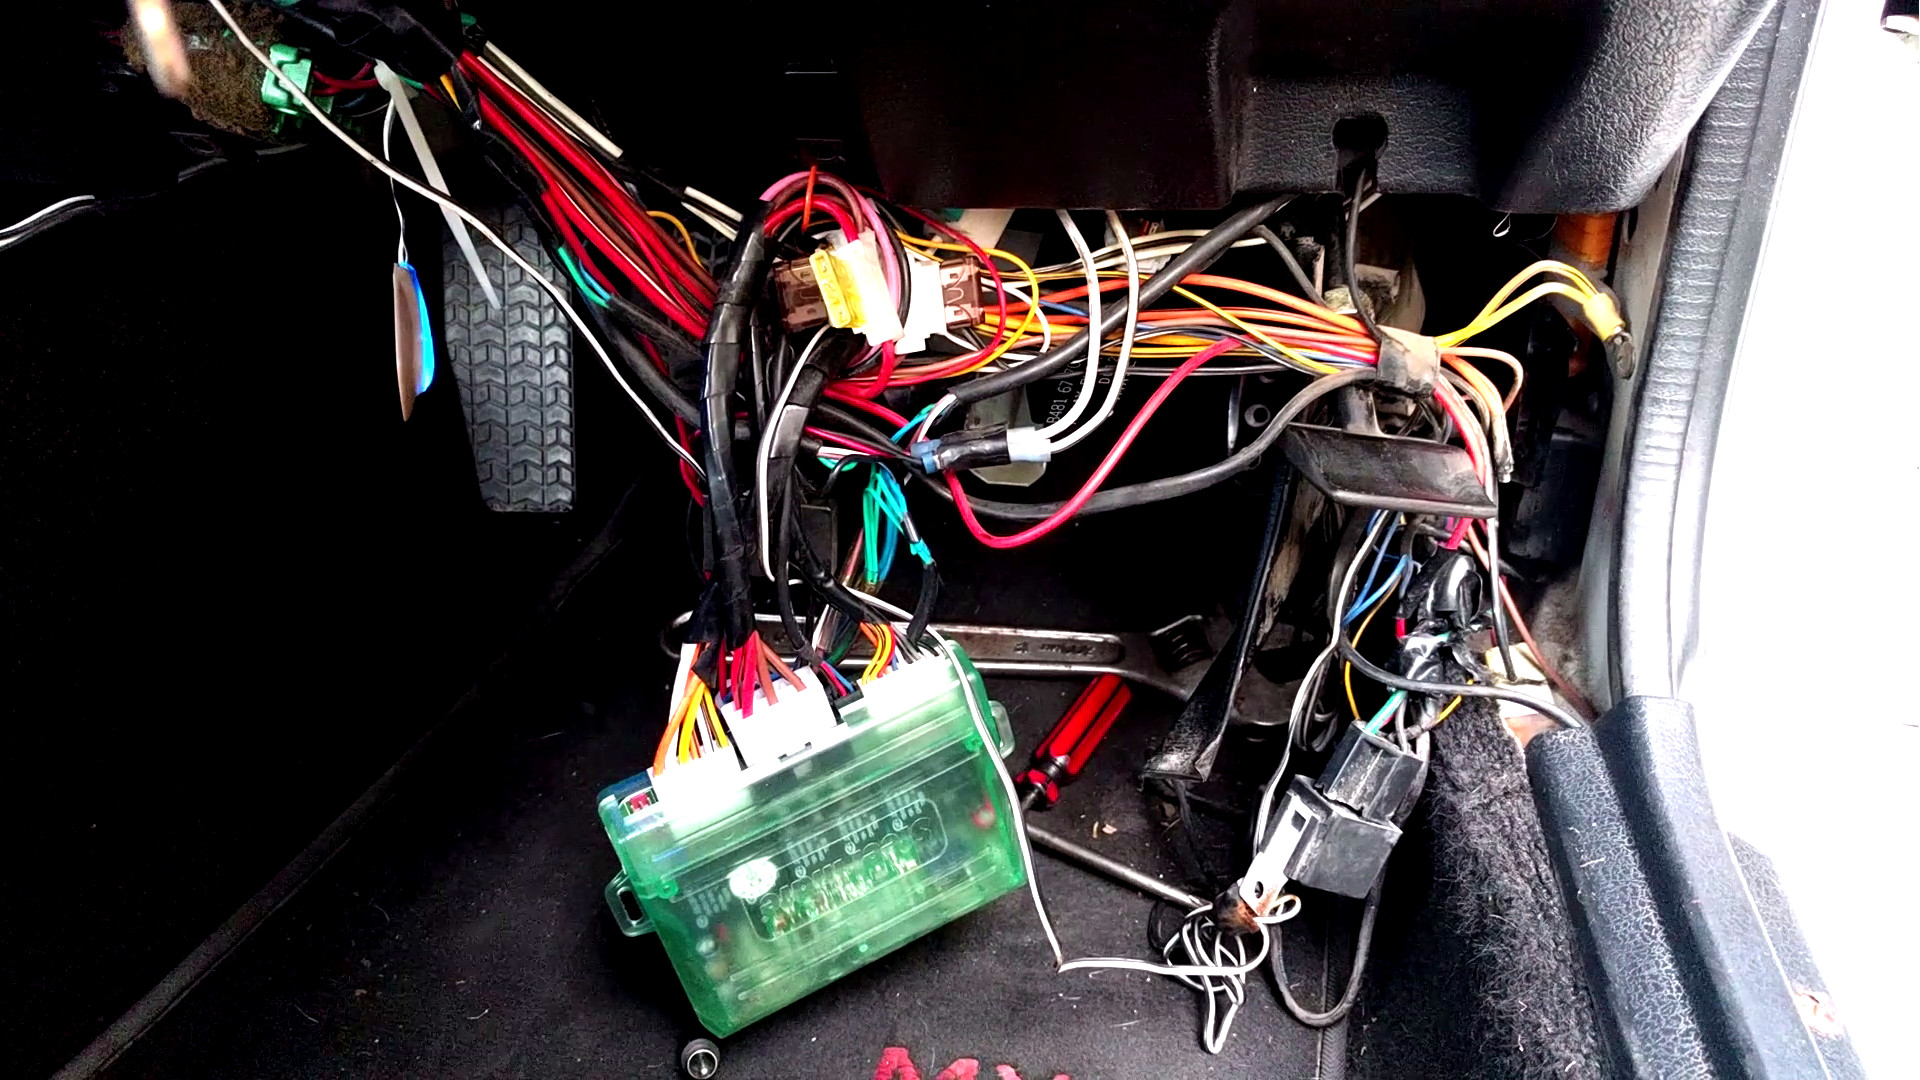 hight resolution of the bane of aftermarket car alarms hackadaycat 4 wire diagram code alarm manuals 15